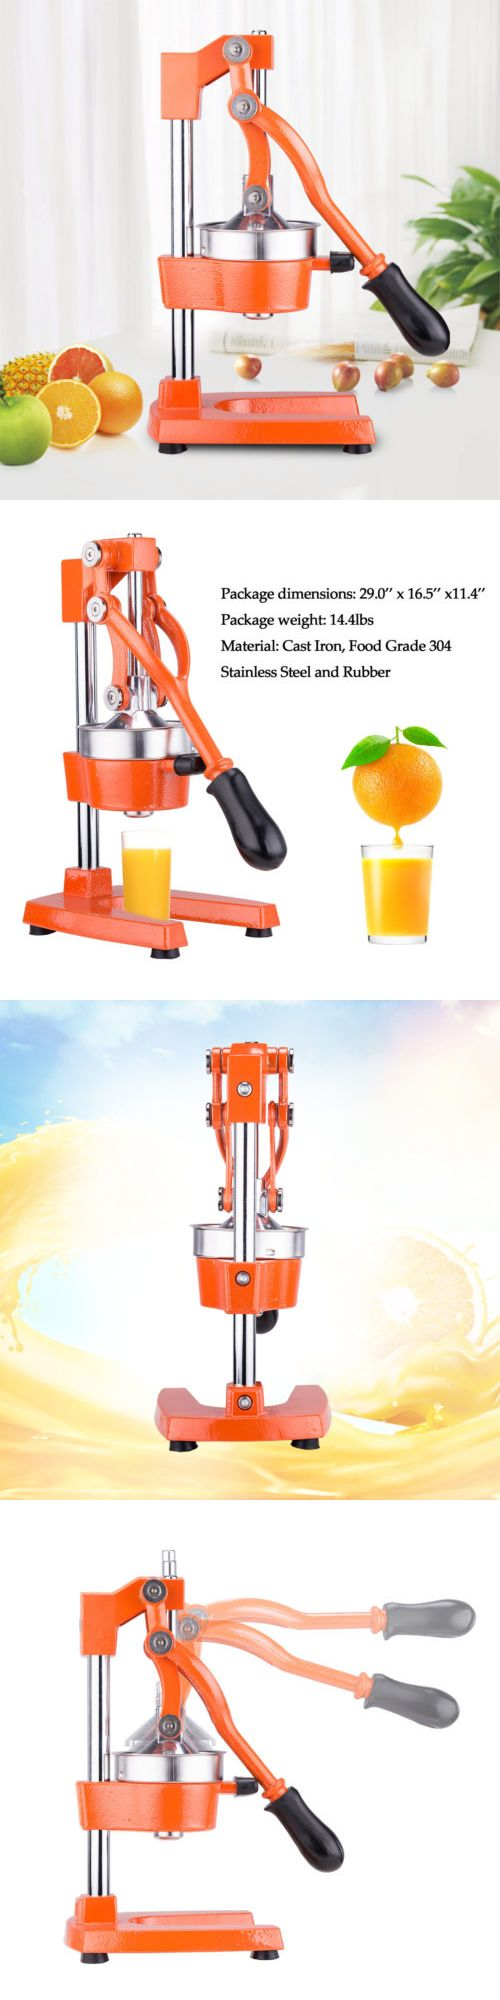 Juicers 20677: Cast Iron Construction Commercial Grade Manual Fruit Juicer Machine In Orange -> BUY IT NOW ONLY: $38.89 on eBay!